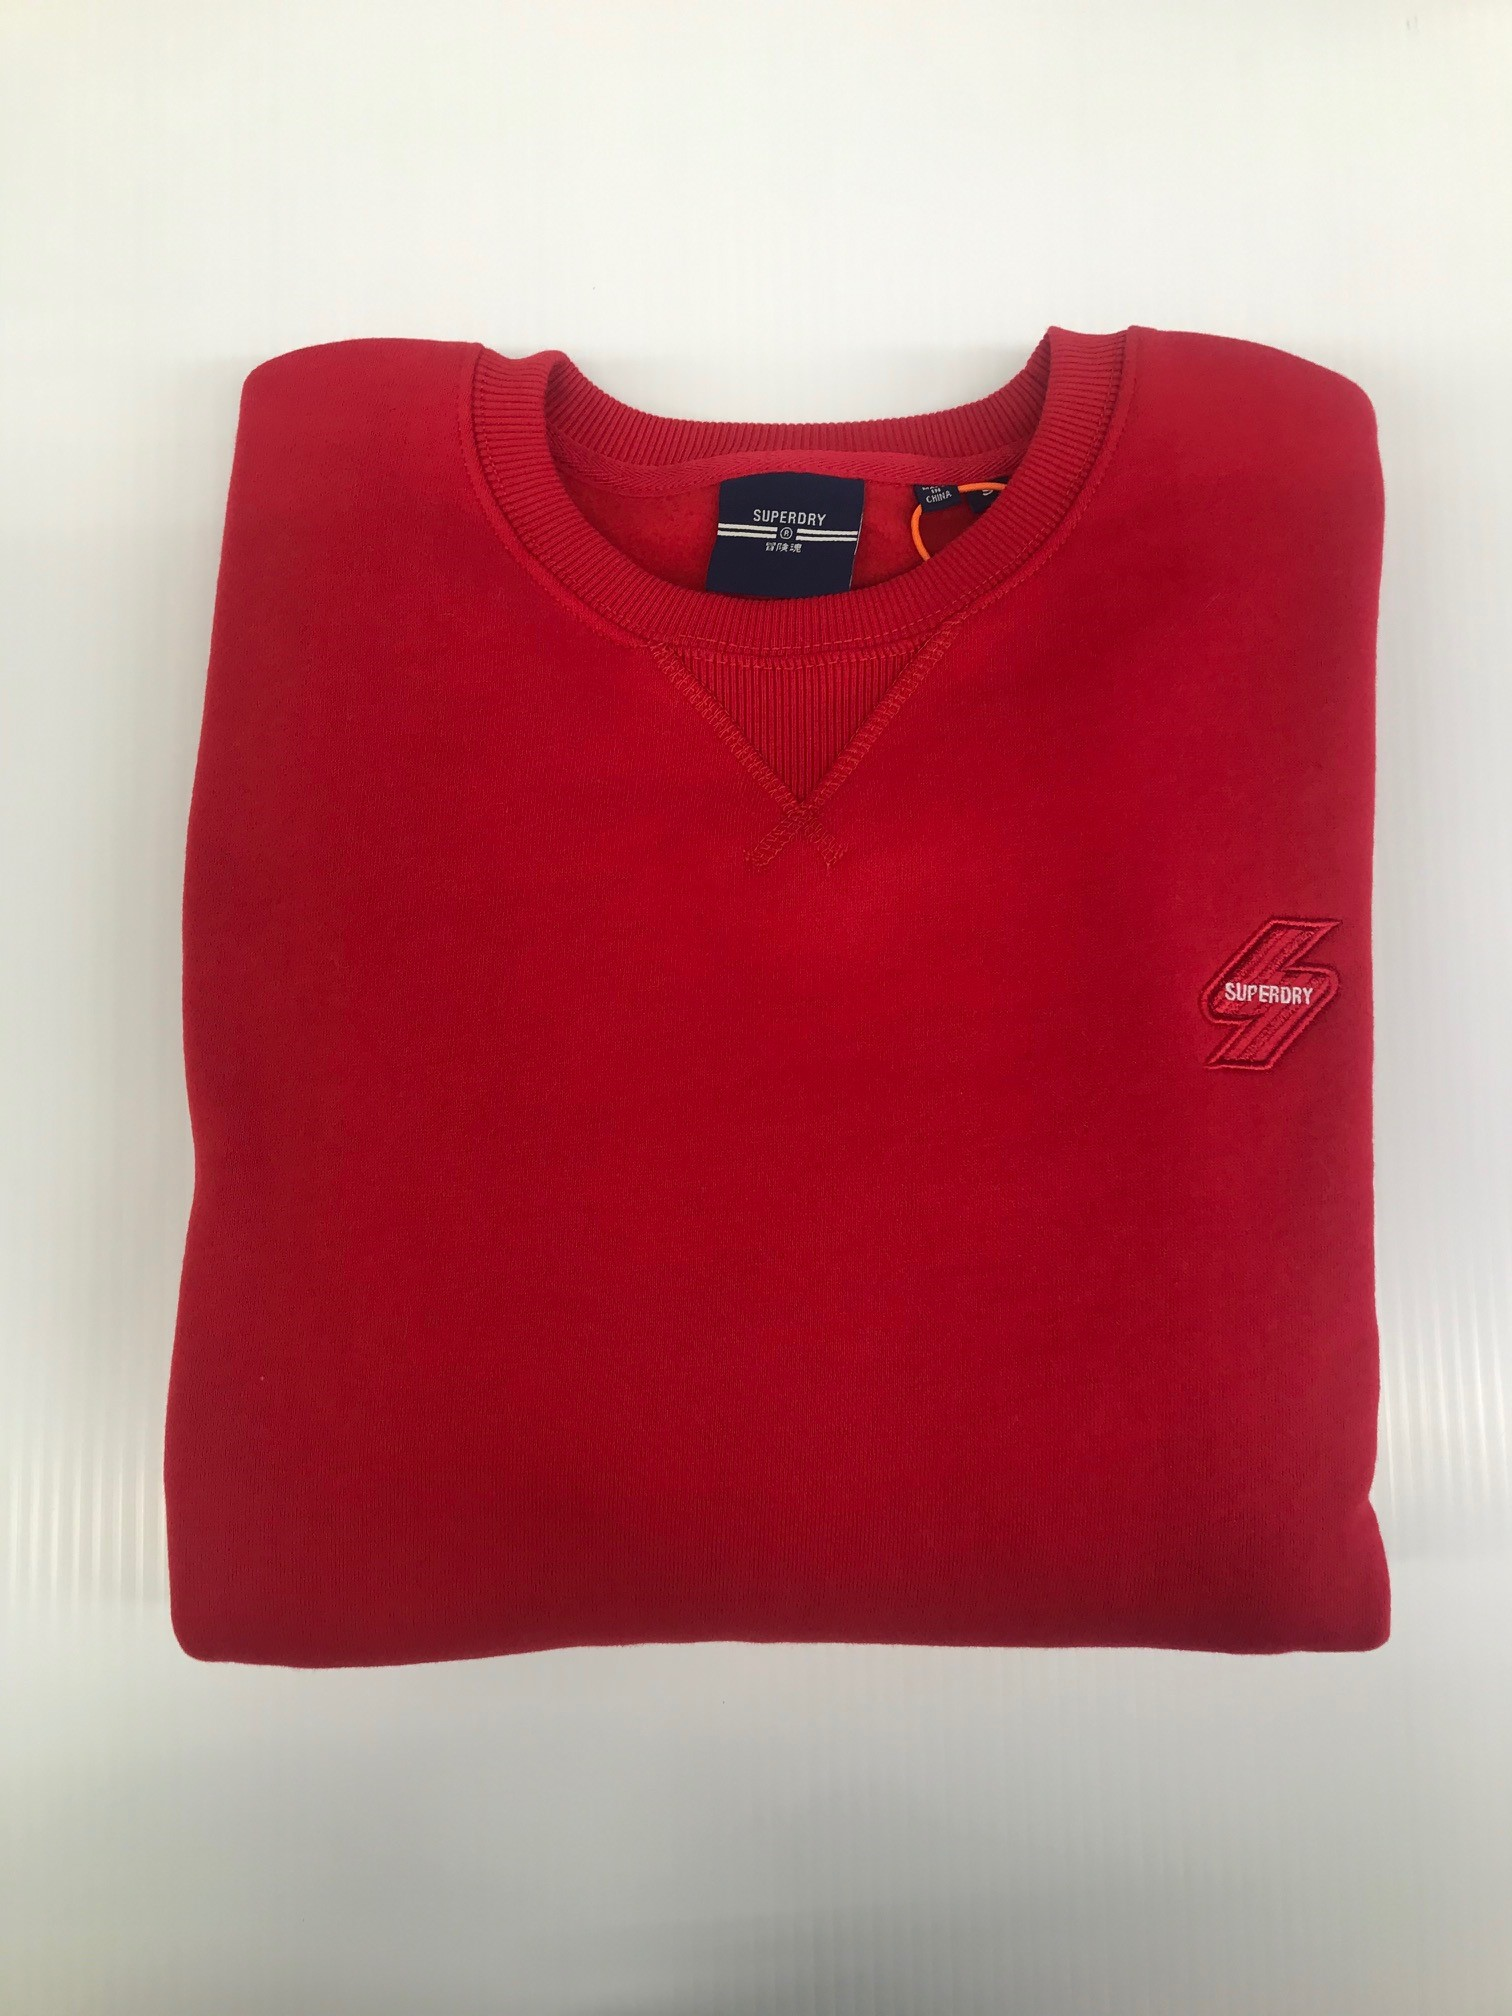 SUPERDRY | Crew Neck Jumper - Red